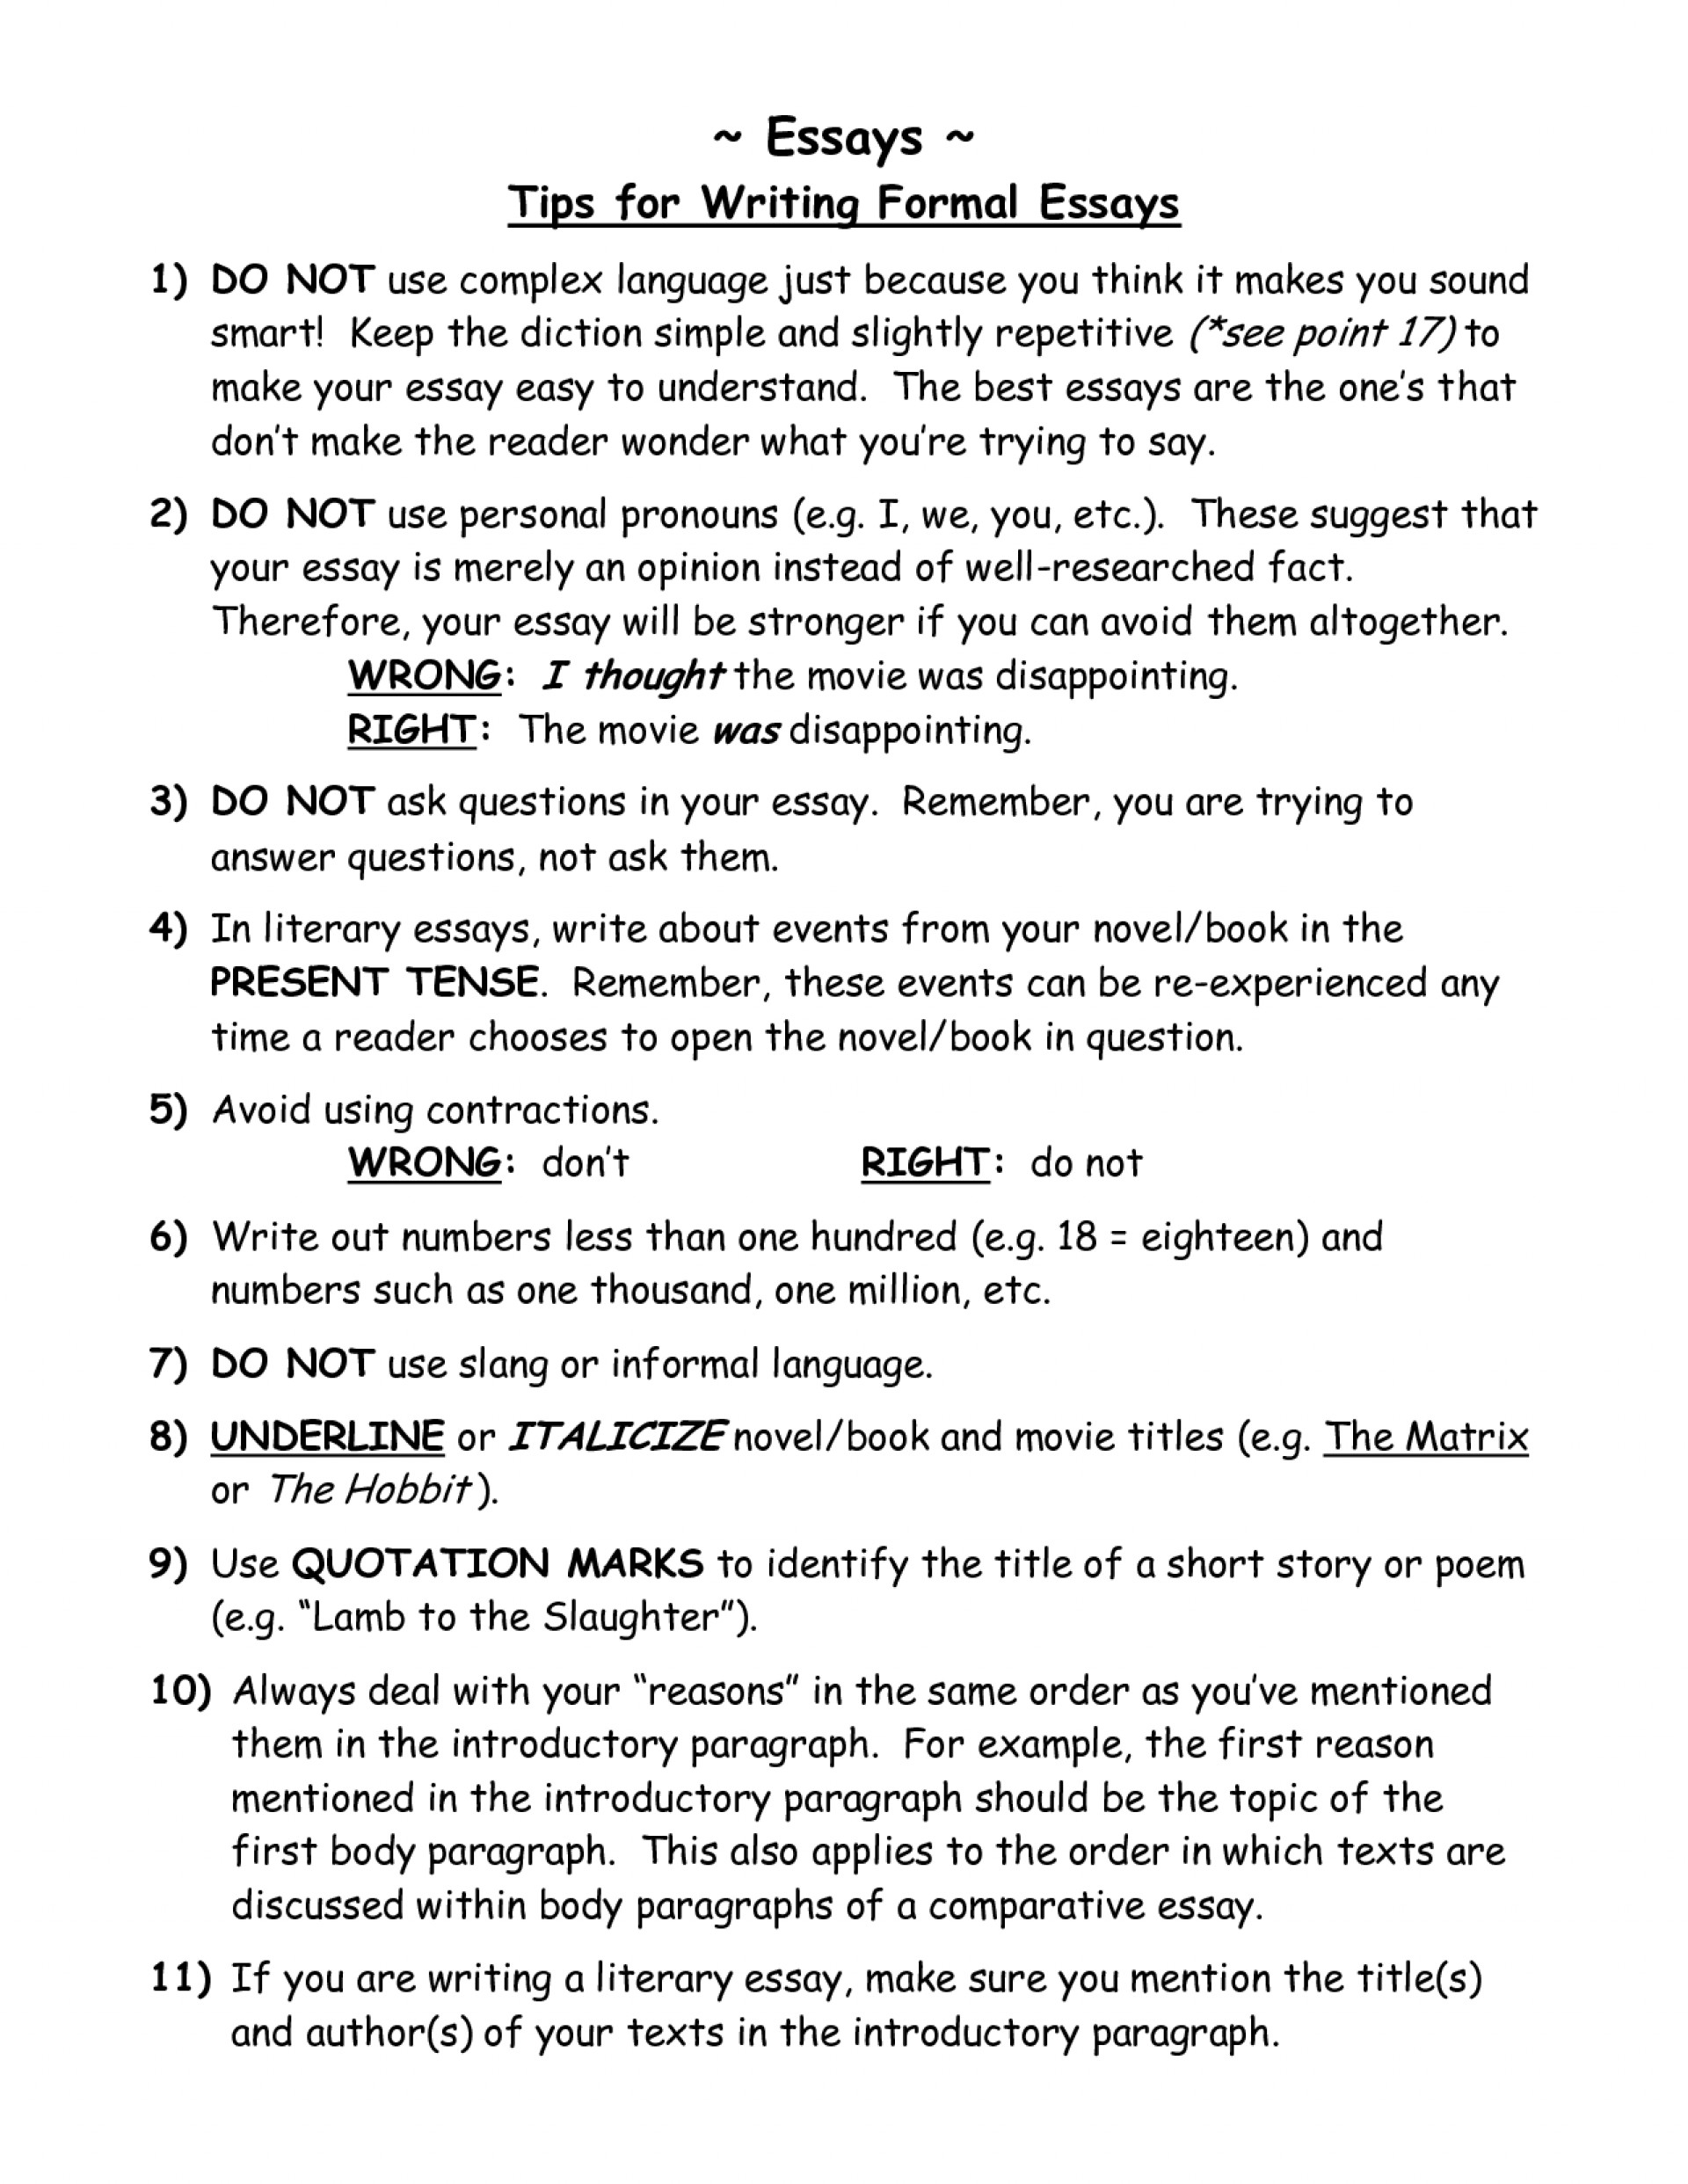 003 How To Write An Effective Essay Example Tips On Writing Essays Goal Blockety Co English Ibcmd Ppt Course Pdf Communication Samples For Ielts In Hindi Staggering A Good Literature Language 1920